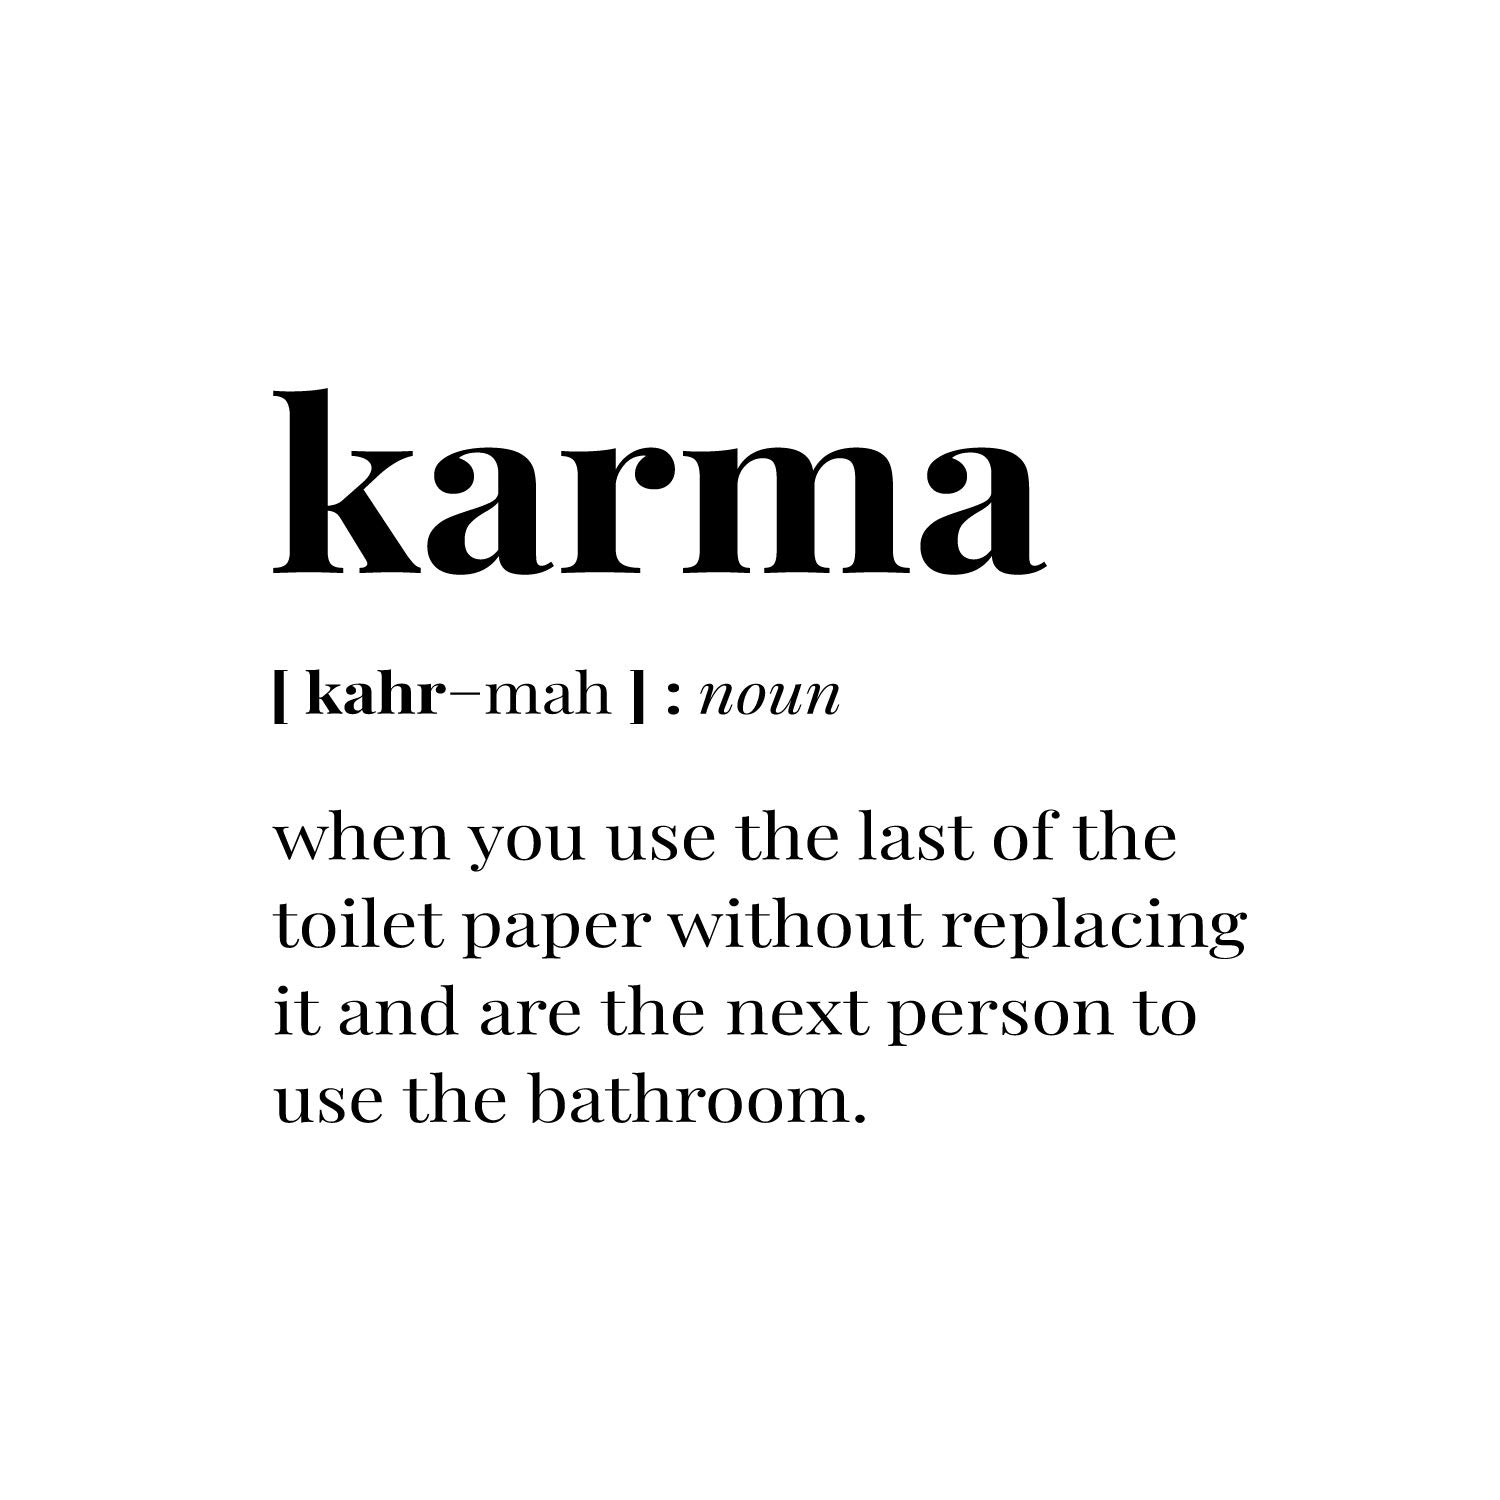 11 x 14.5 Sarcastic Witty Indoor Outdoor Bathroom Restroom Wall Door Decor Vinyl Wall Art Decal Karma Funny Adult Humor Modern Life Quotes for Home Office Work Decoration